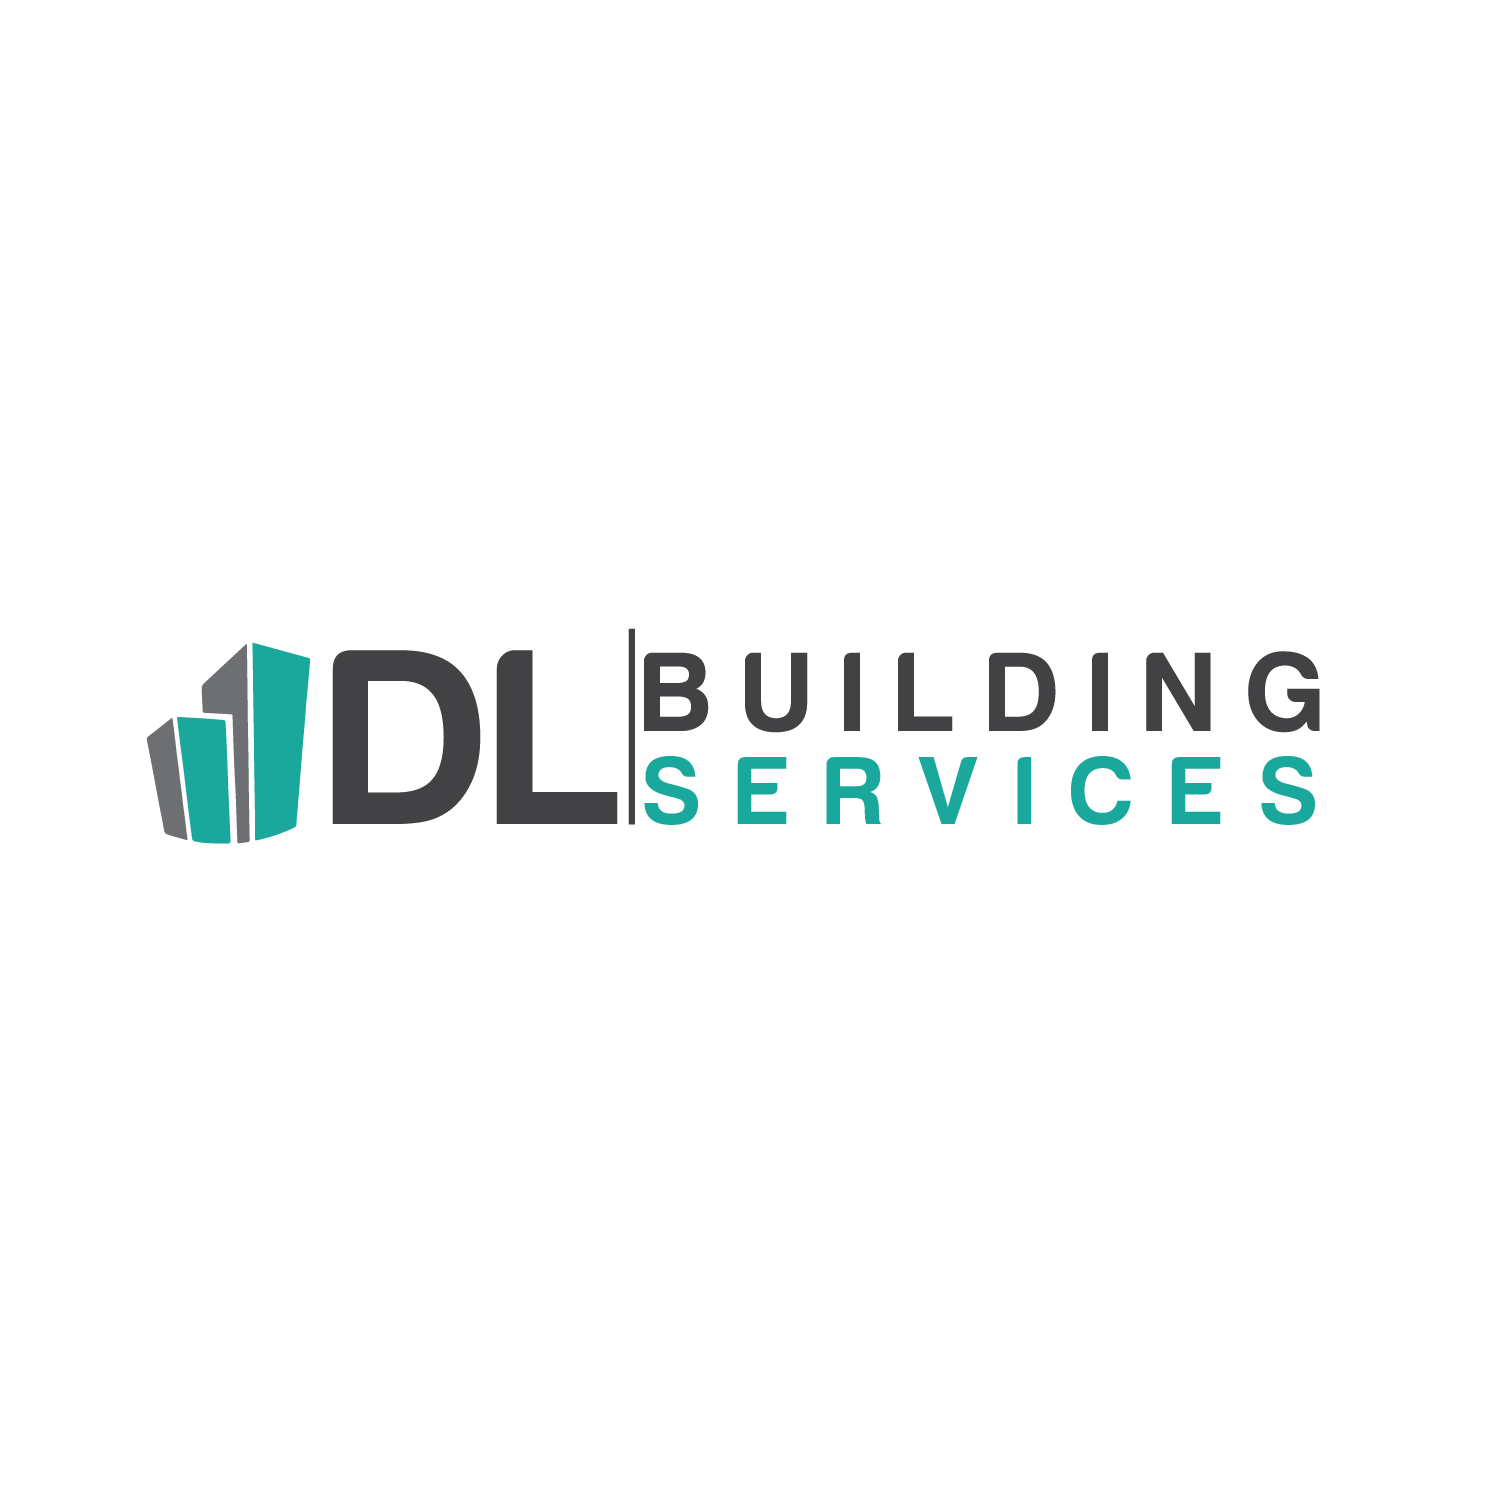 Commercial Widow Cleaning Services Dl Building Services